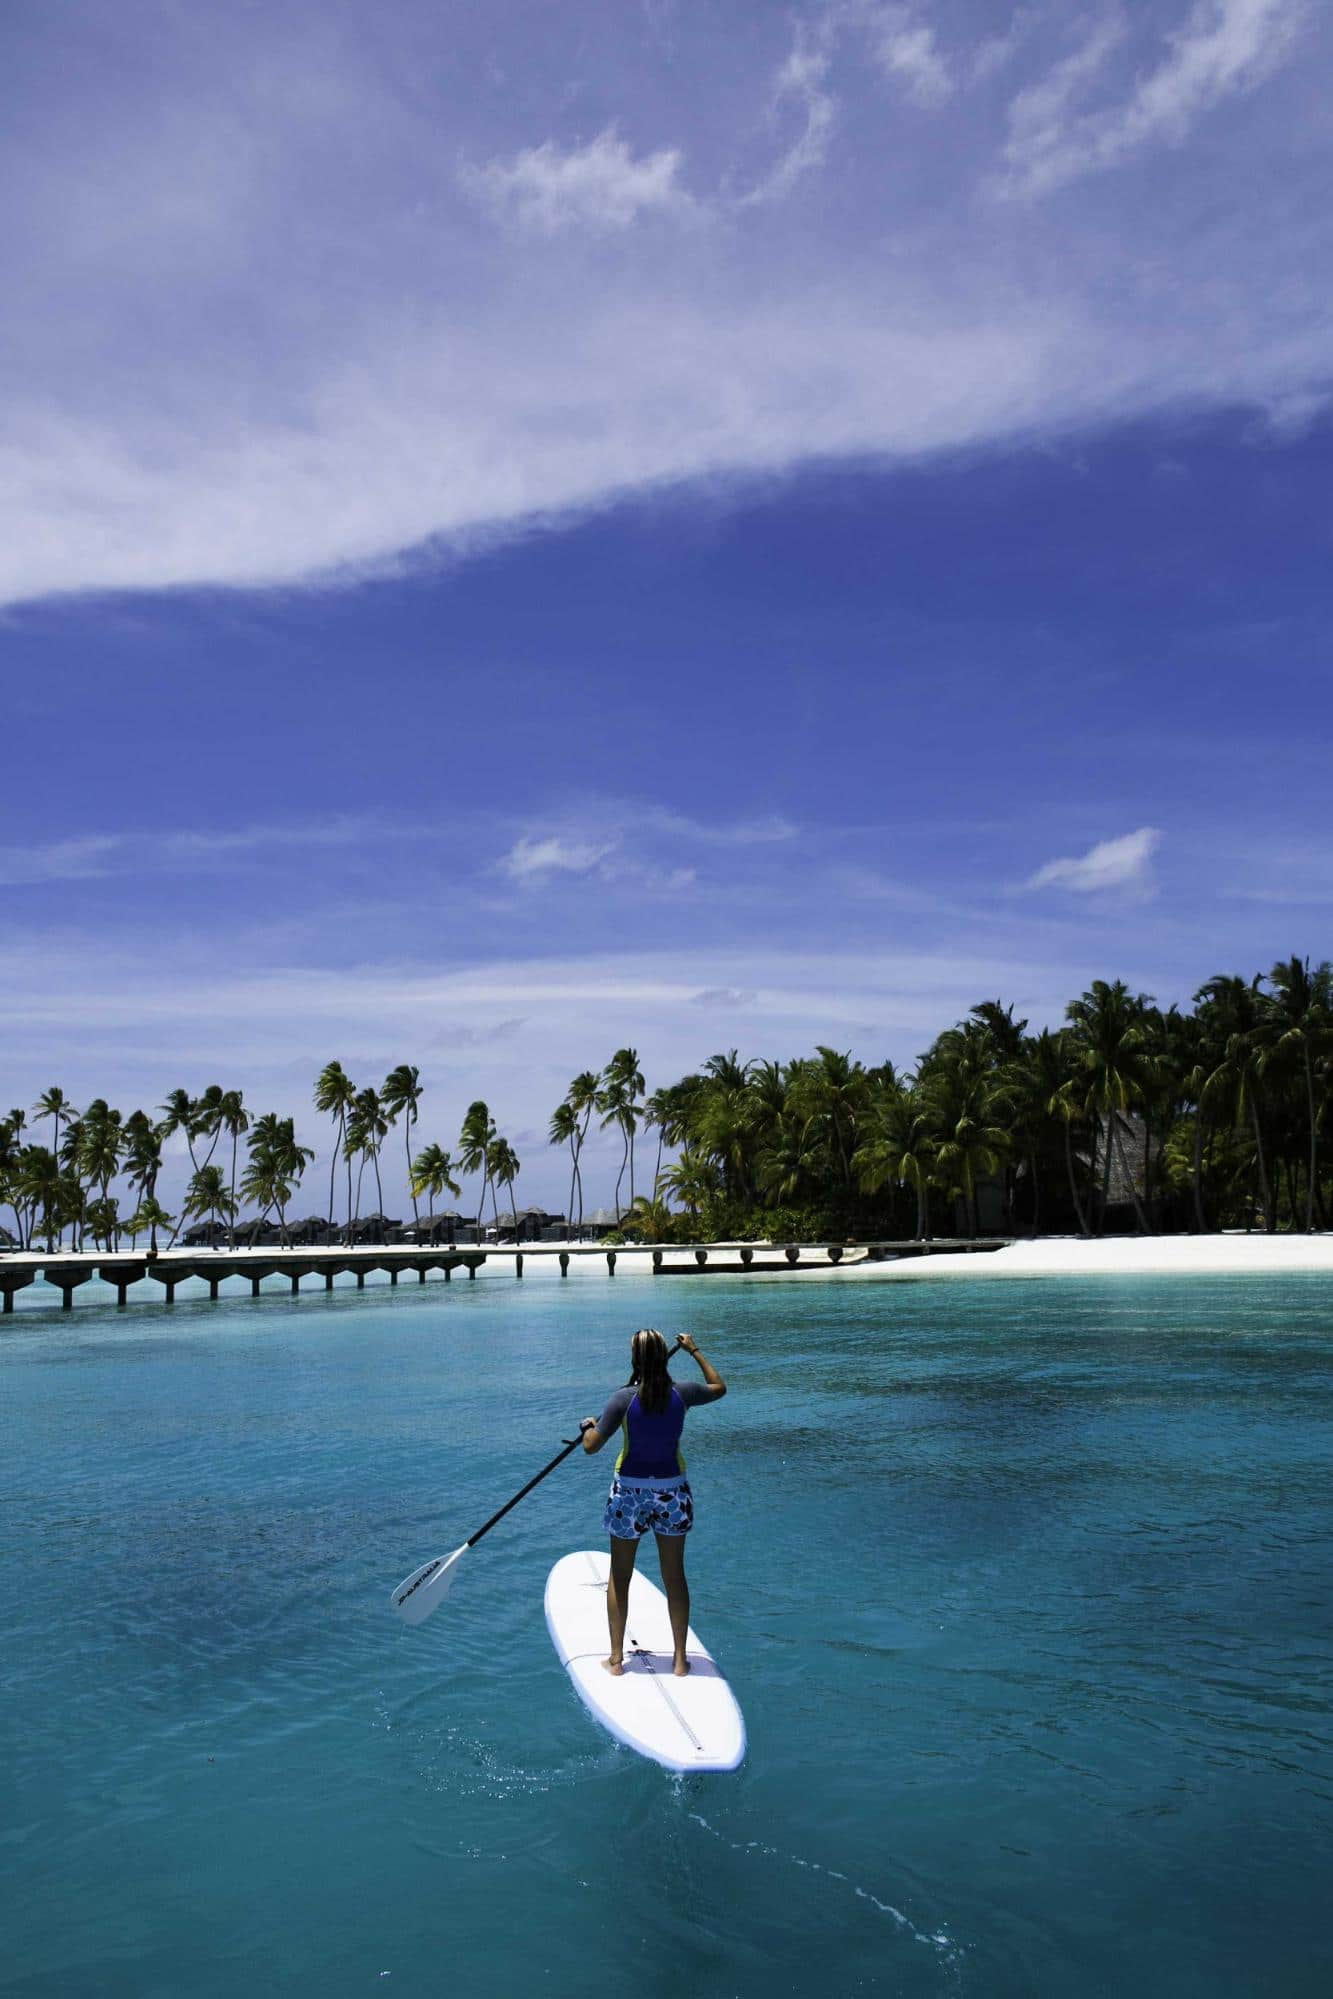 Stand-up paddle board at Gili Lankanfushi - Courtesy of Gili Lankanfushi